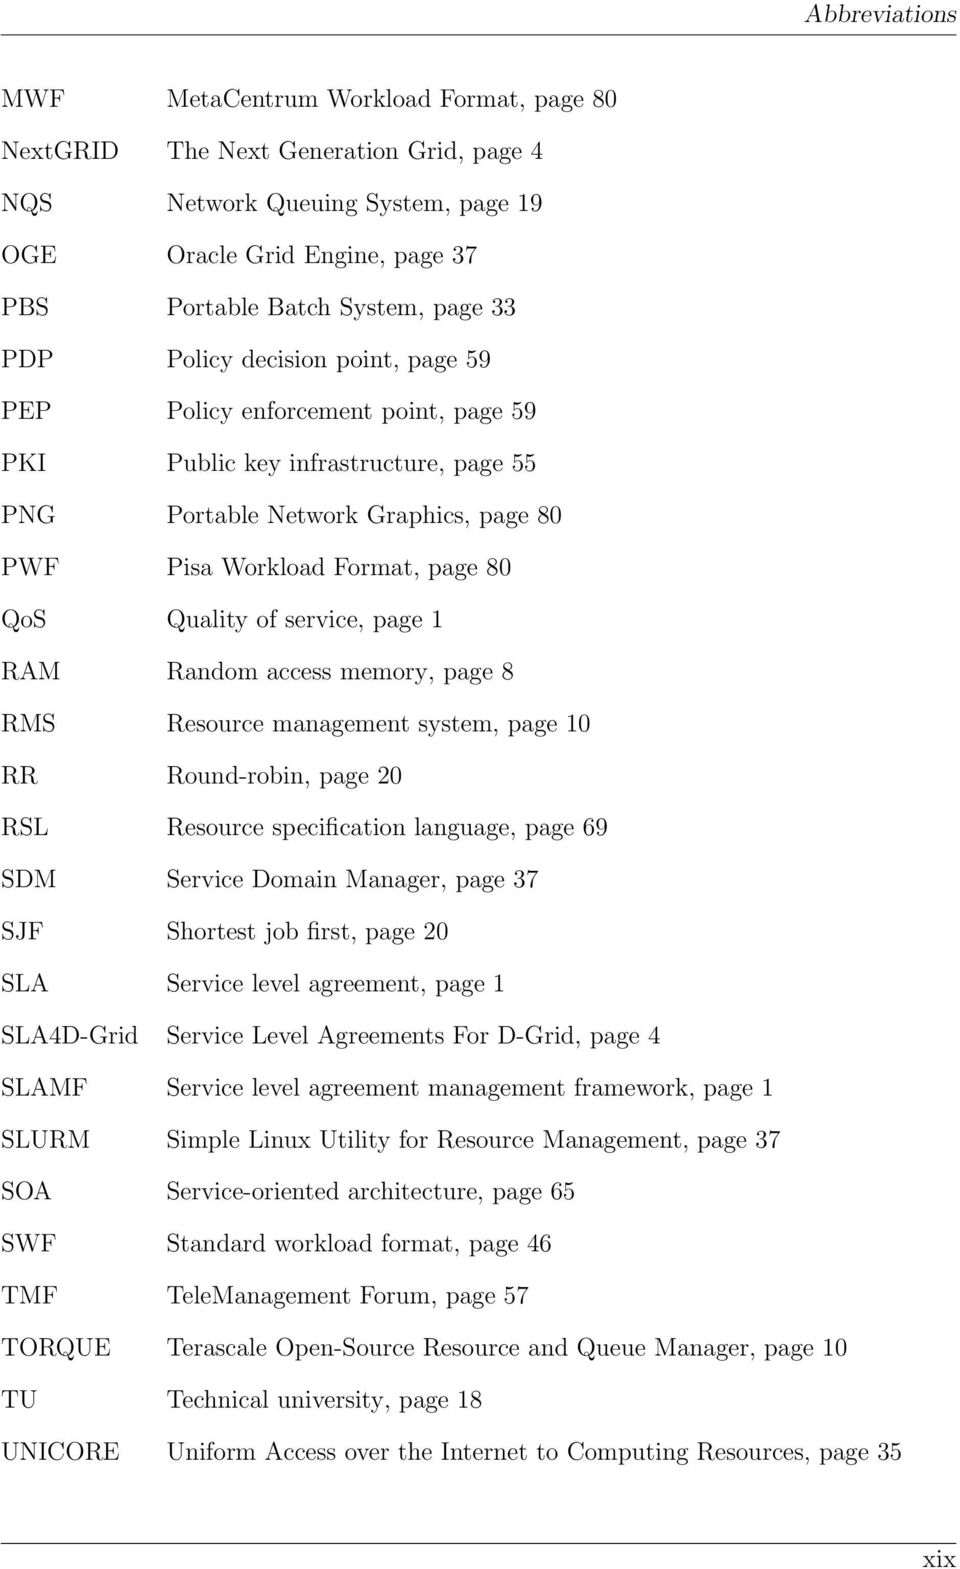 service, page 1 RAM Random access memory, page 8 RMS Resource management system, page 10 RR Round-robin, page 20 RSL Resource specification language, page 69 SDM Service Domain Manager, page 37 SJF